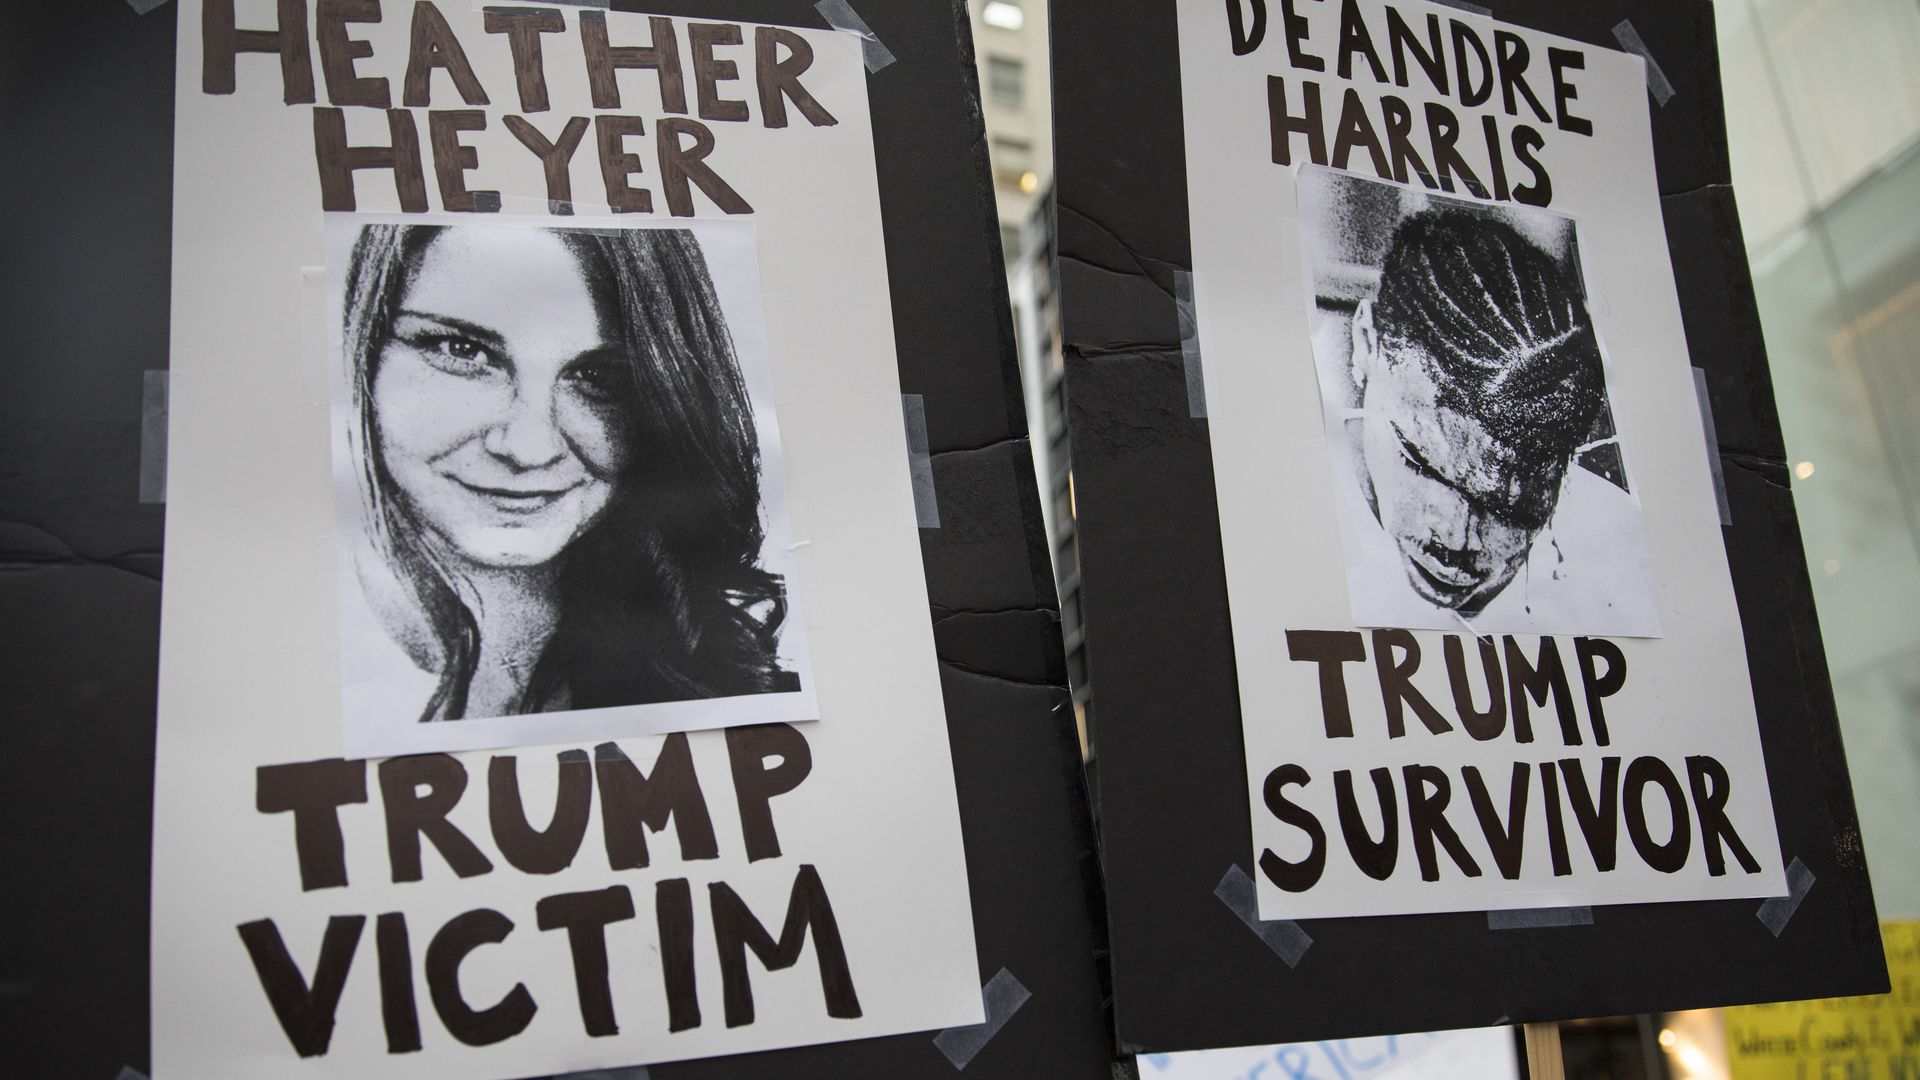 protest signs with images of Heather Heyer and Deandre Harris